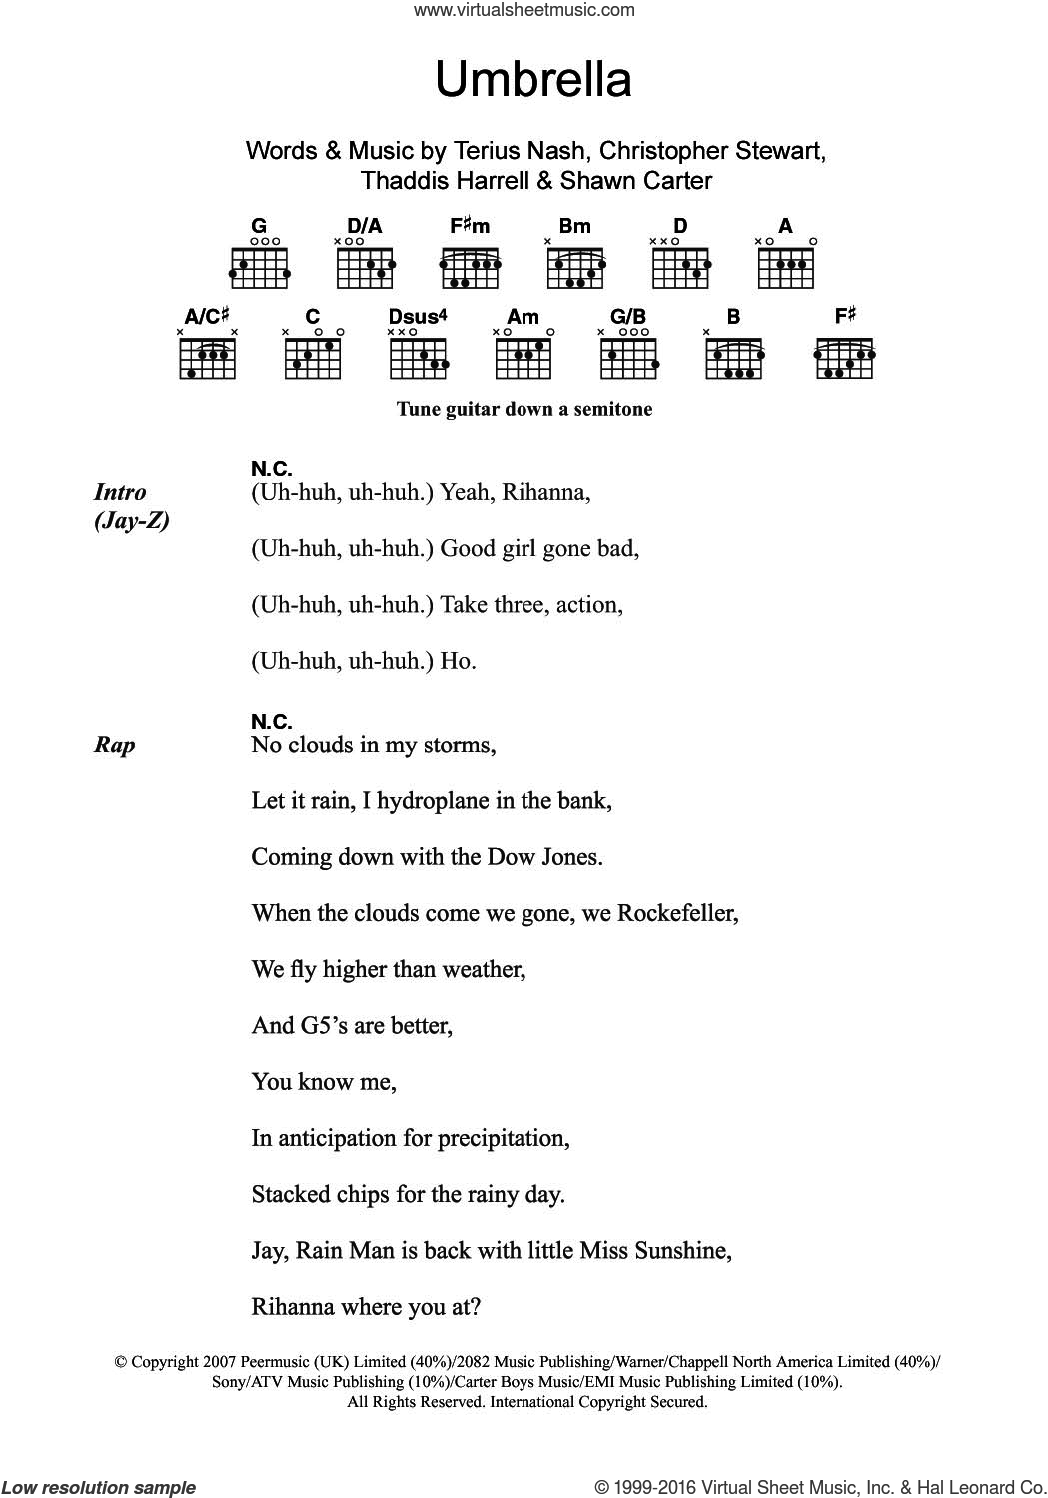 Umbrella (featuring Jay-Z) sheet music for guitar (chords) by Rihanna, Jay-Z, Christopher Stewart, Shawn Carter, Terius Nash and Thaddis Harrell, intermediate. Score Image Preview.